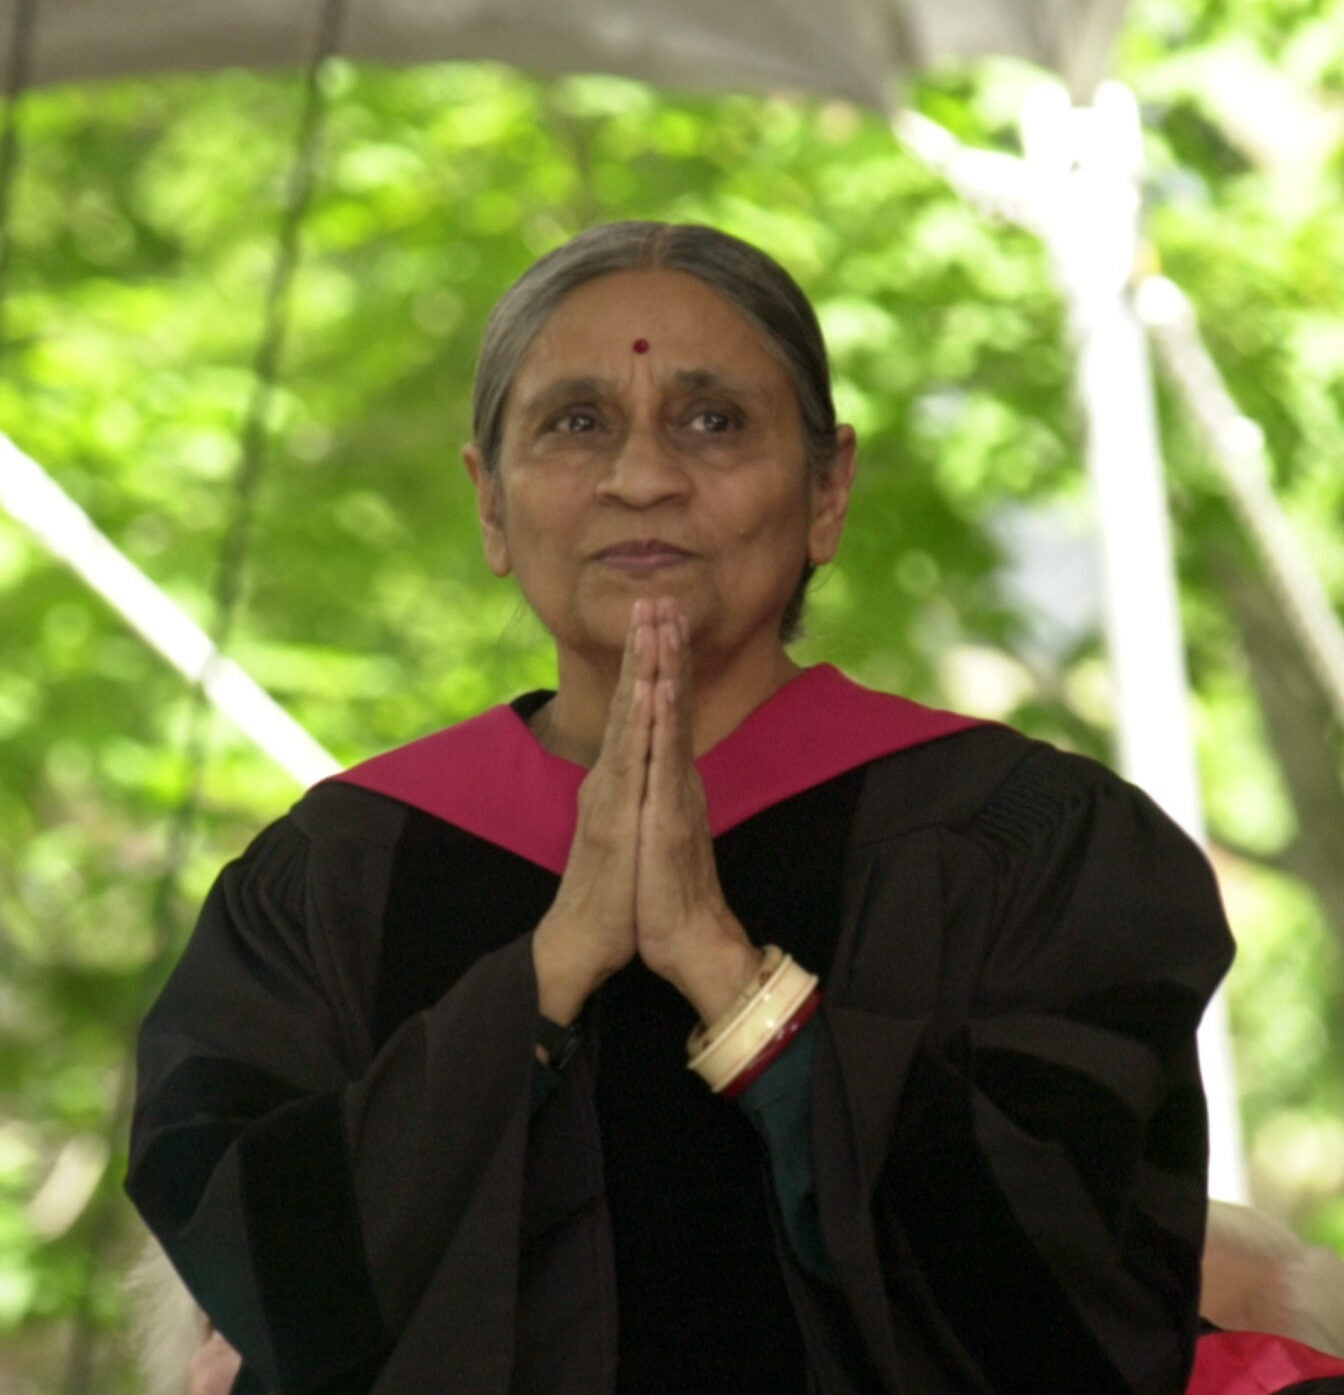 An Indian woman with her hands clasped in front of her mouth